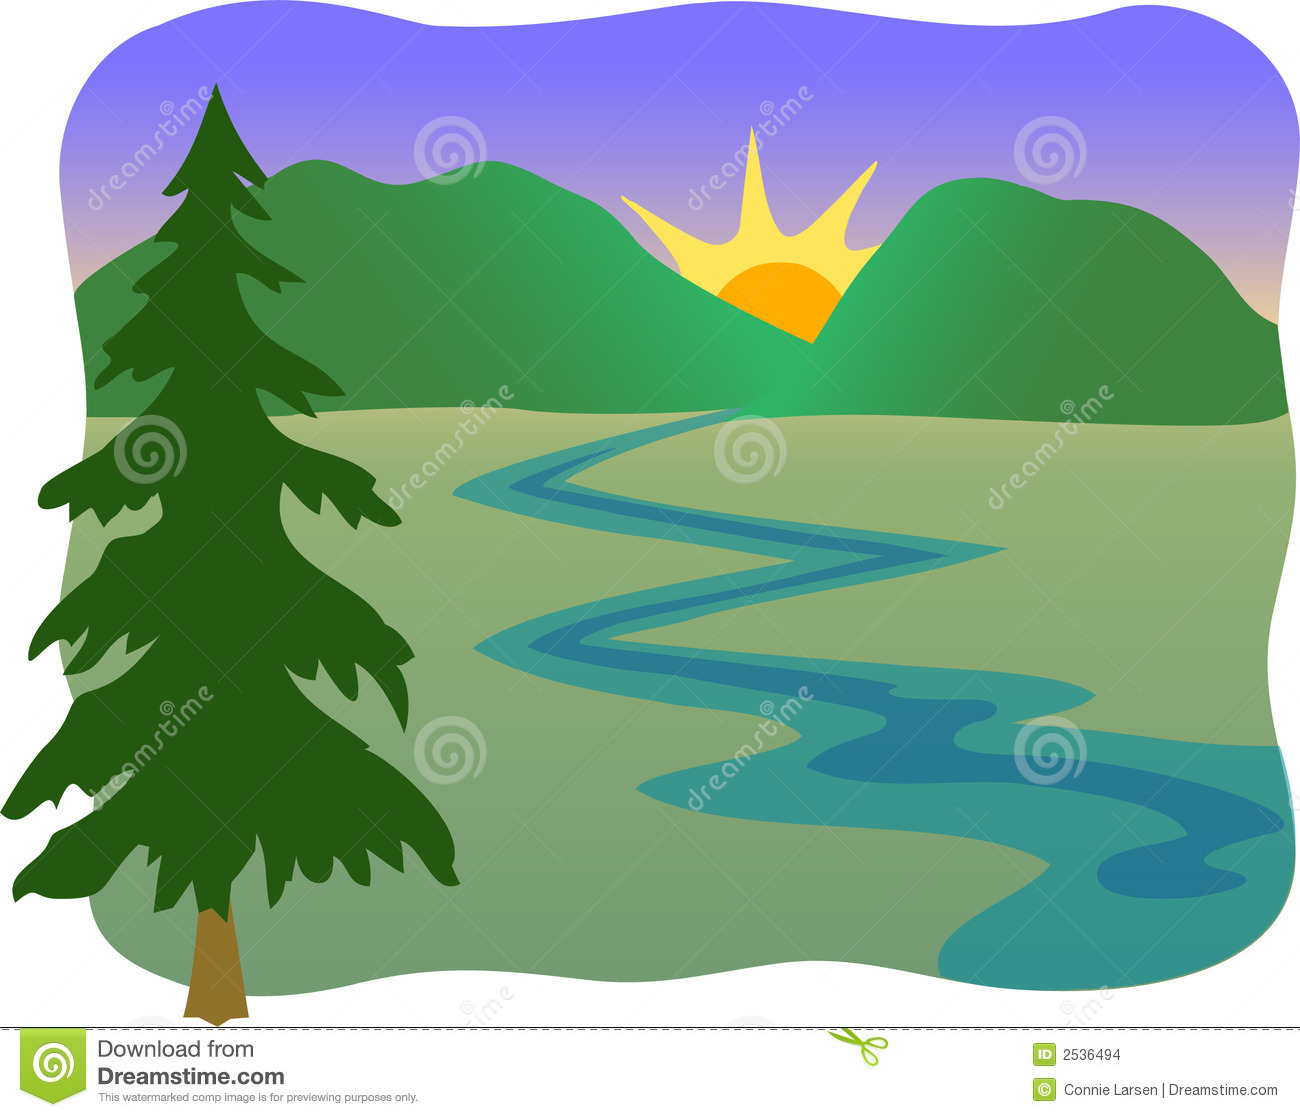 mountain stream eps stock vector illustration of rendering 2536494 rh dreamstime com Mountain Logos Clip Art Mountain Background Clip Art